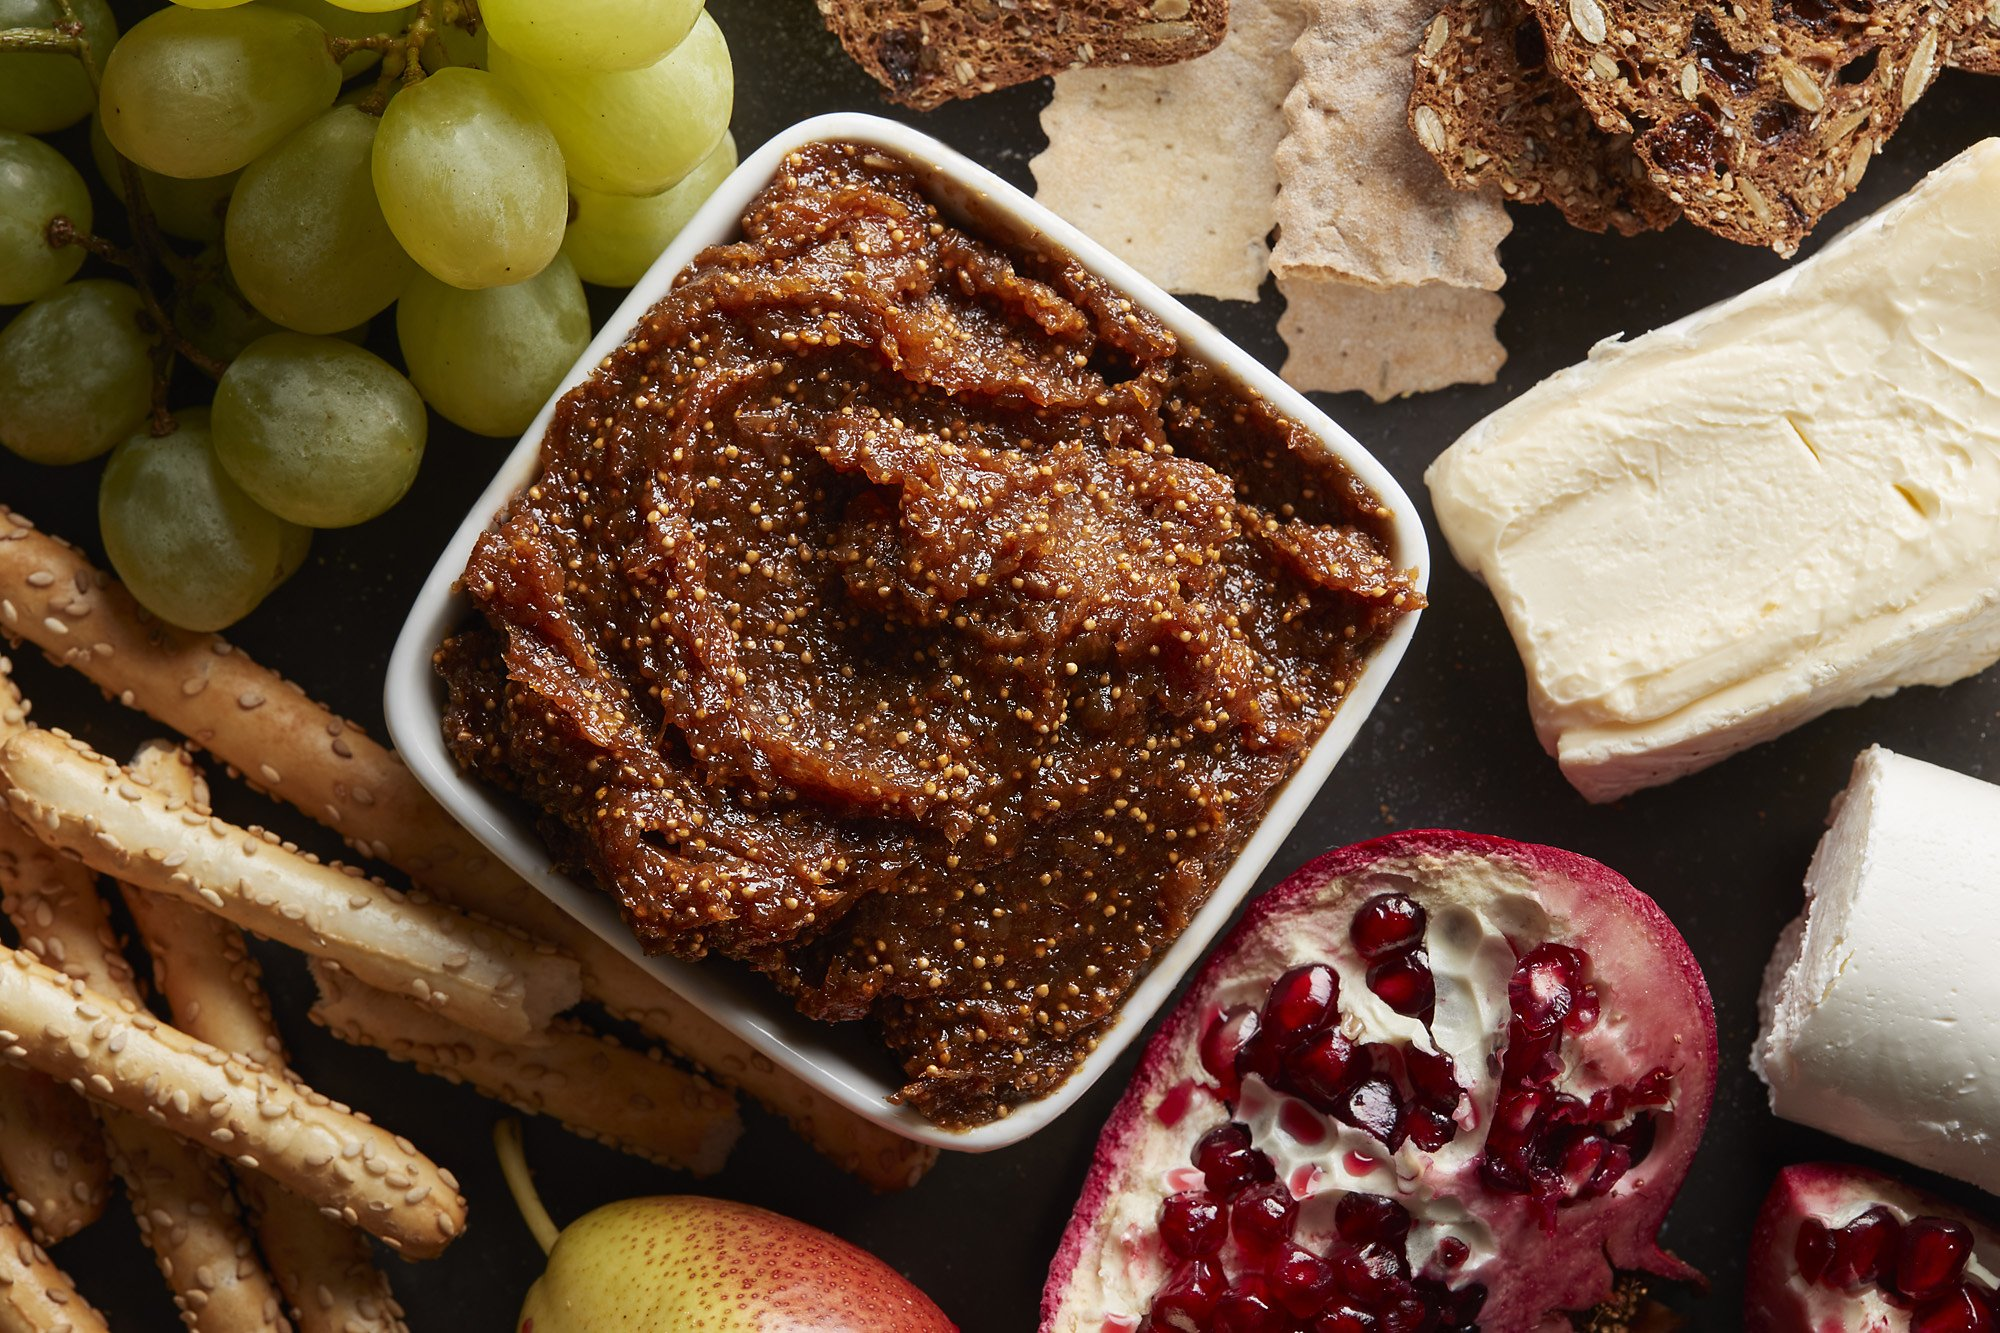 A small bowl of spiced fig jam surrounded by other ingredients